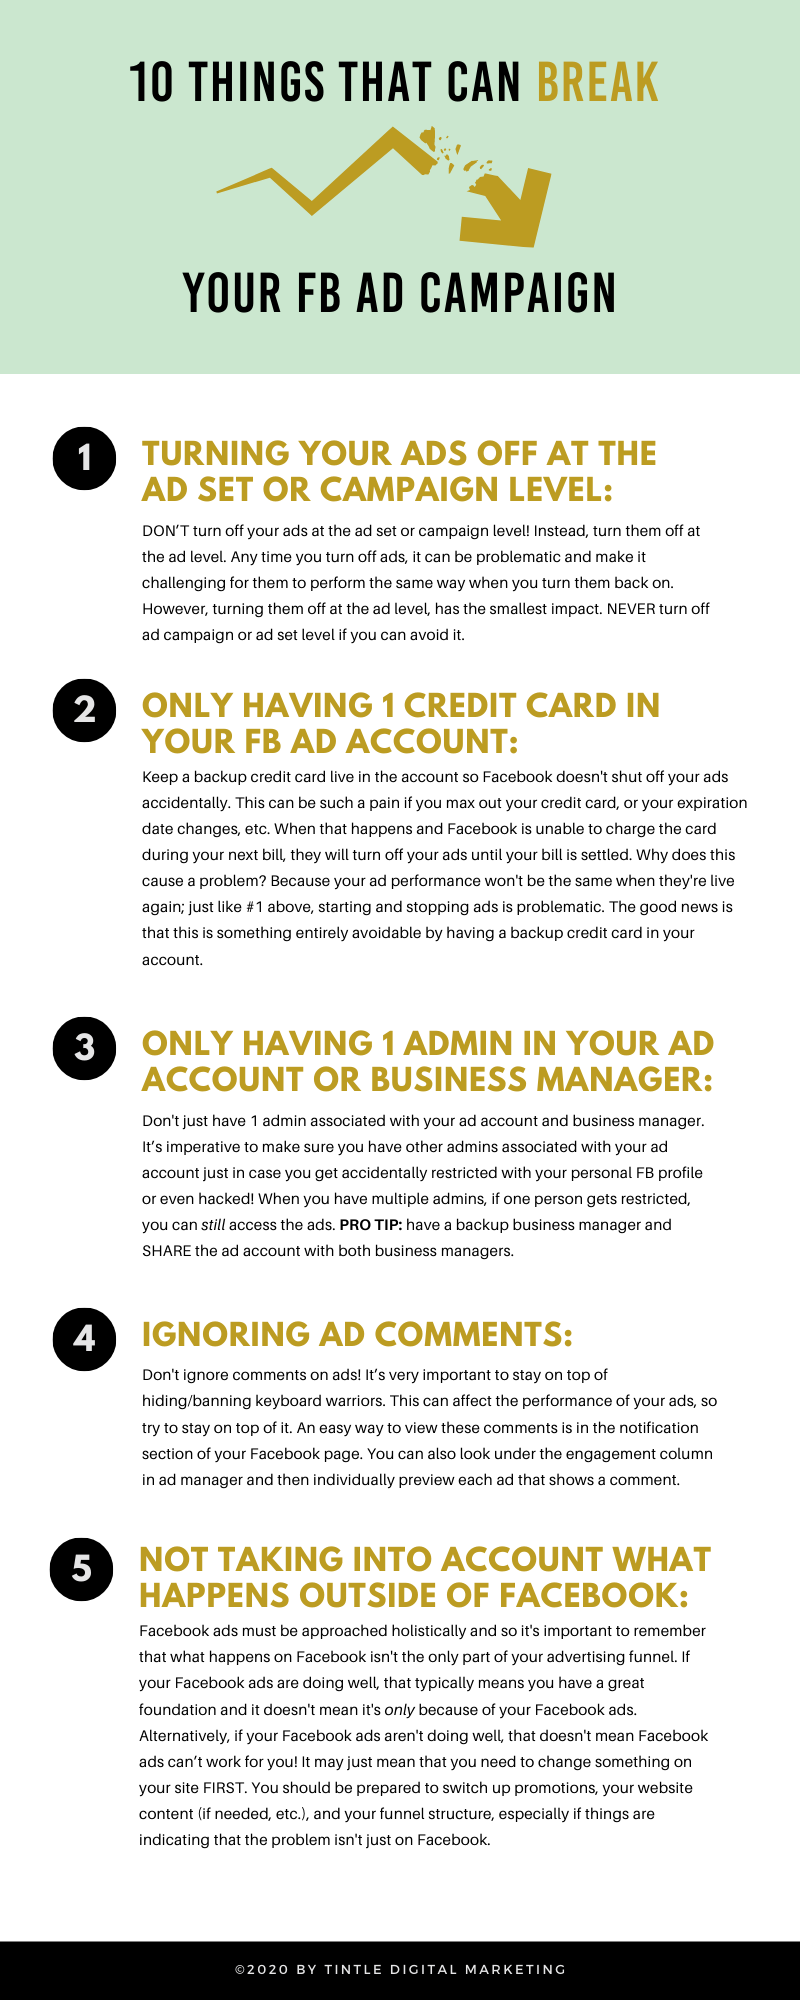 10 Things That Can Break Your Facebook Ads